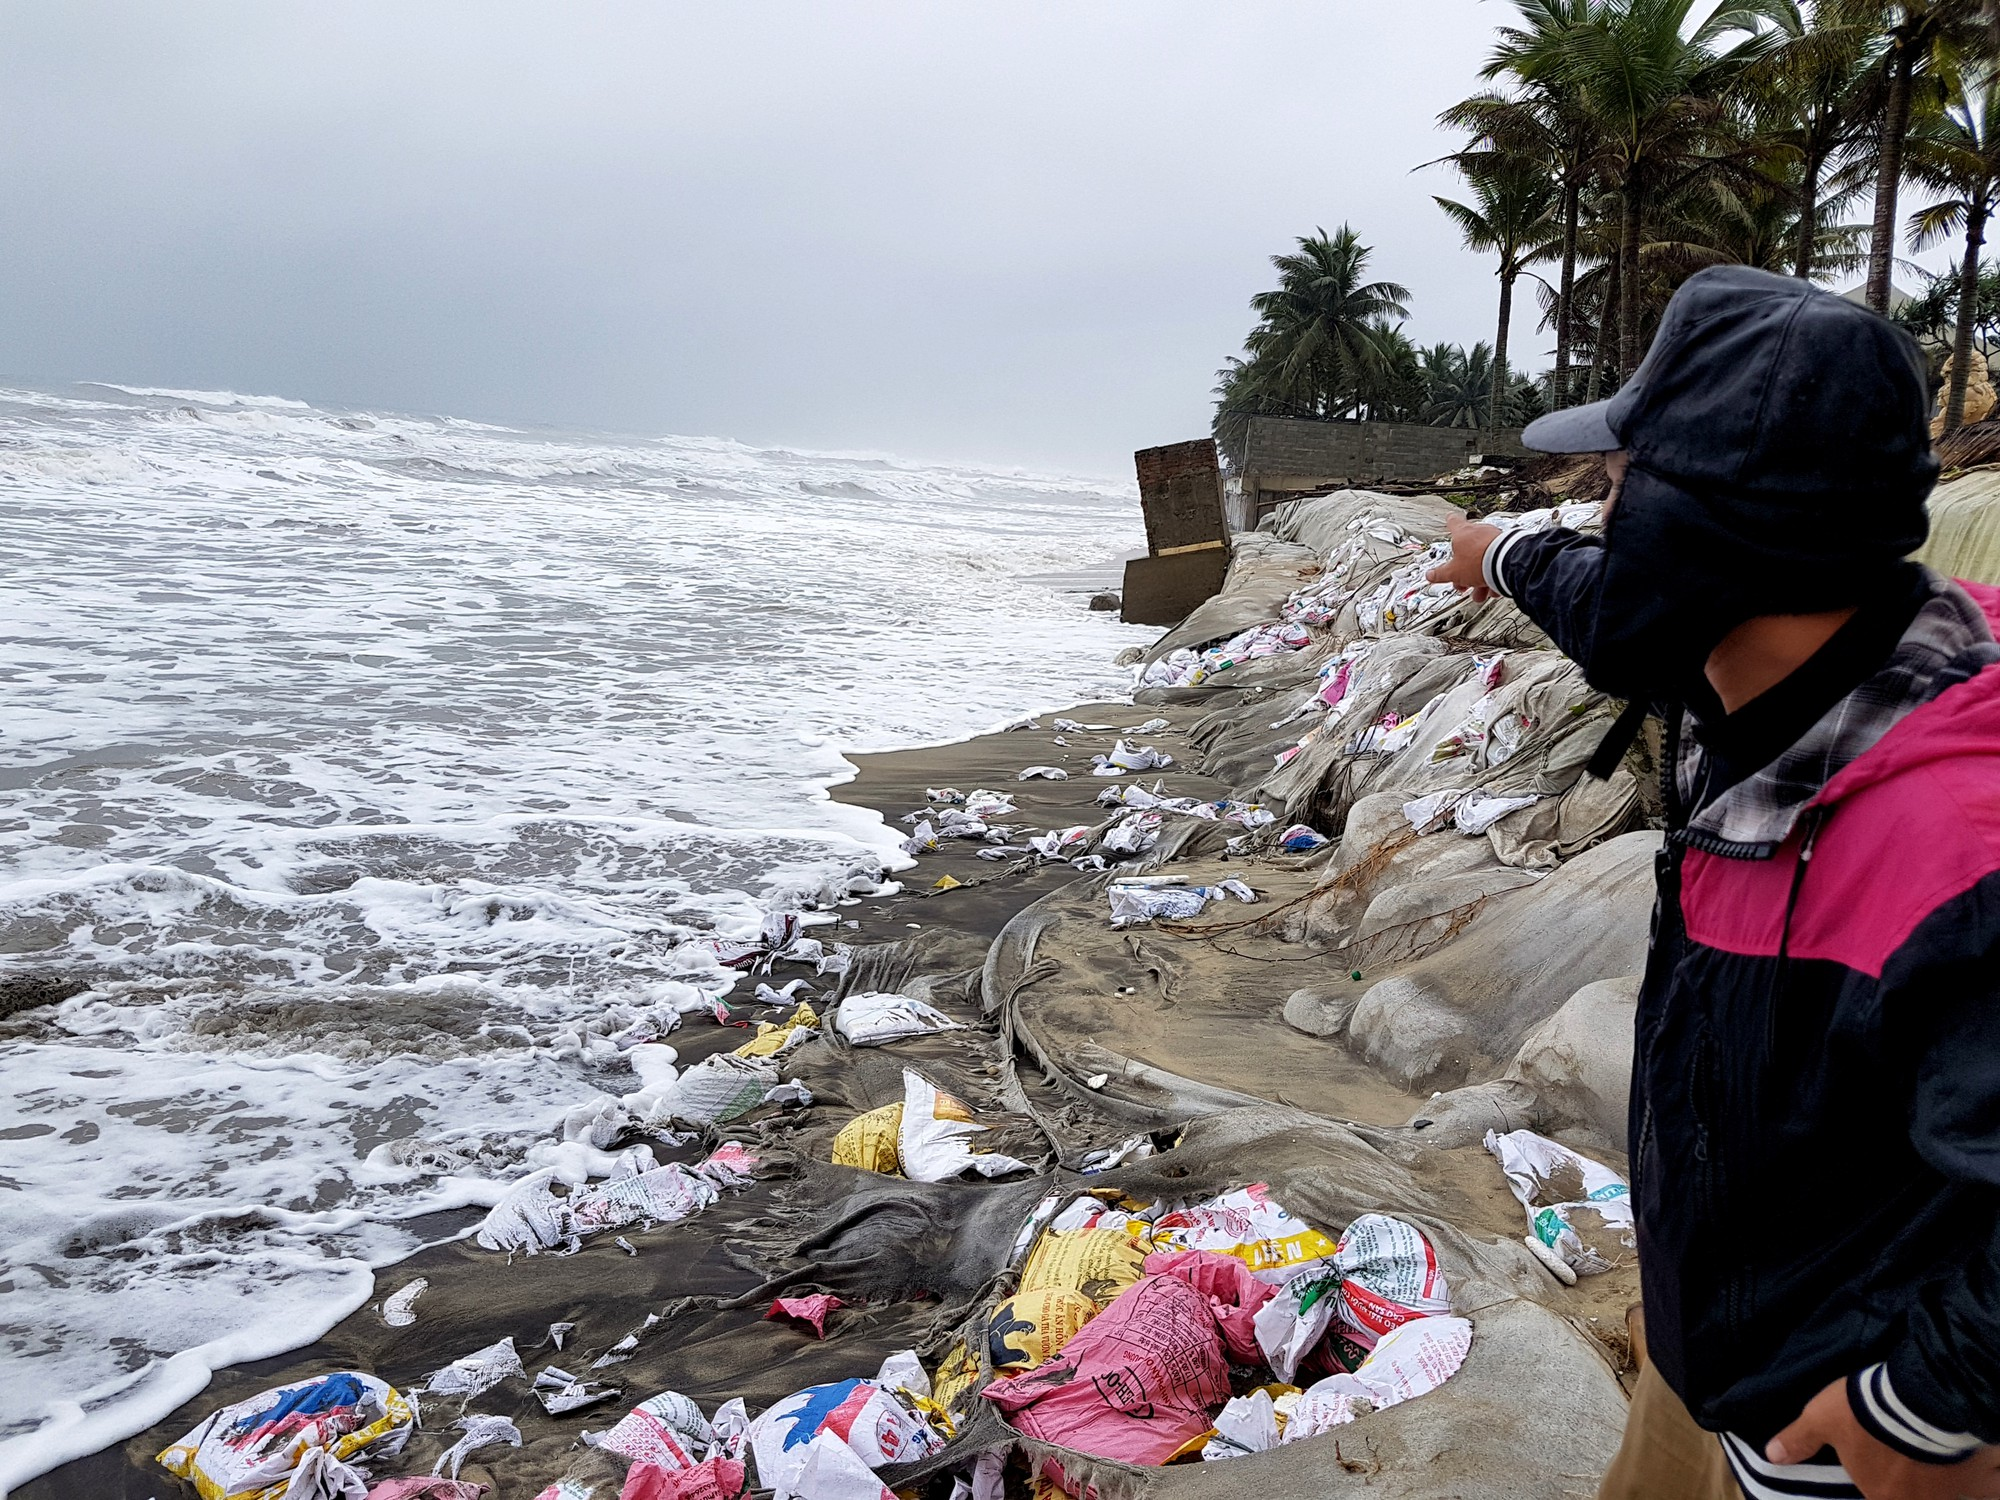 $30.43-million support proposed to save Cua Dai beach, Vietnam environment, climate change in Vietnam, Vietnam weather, Vietnam climate, pollution in Vietnam, environmental news, sci-tech news, vietnamnet bridge, english news, Vietnam news, news Vietnam,